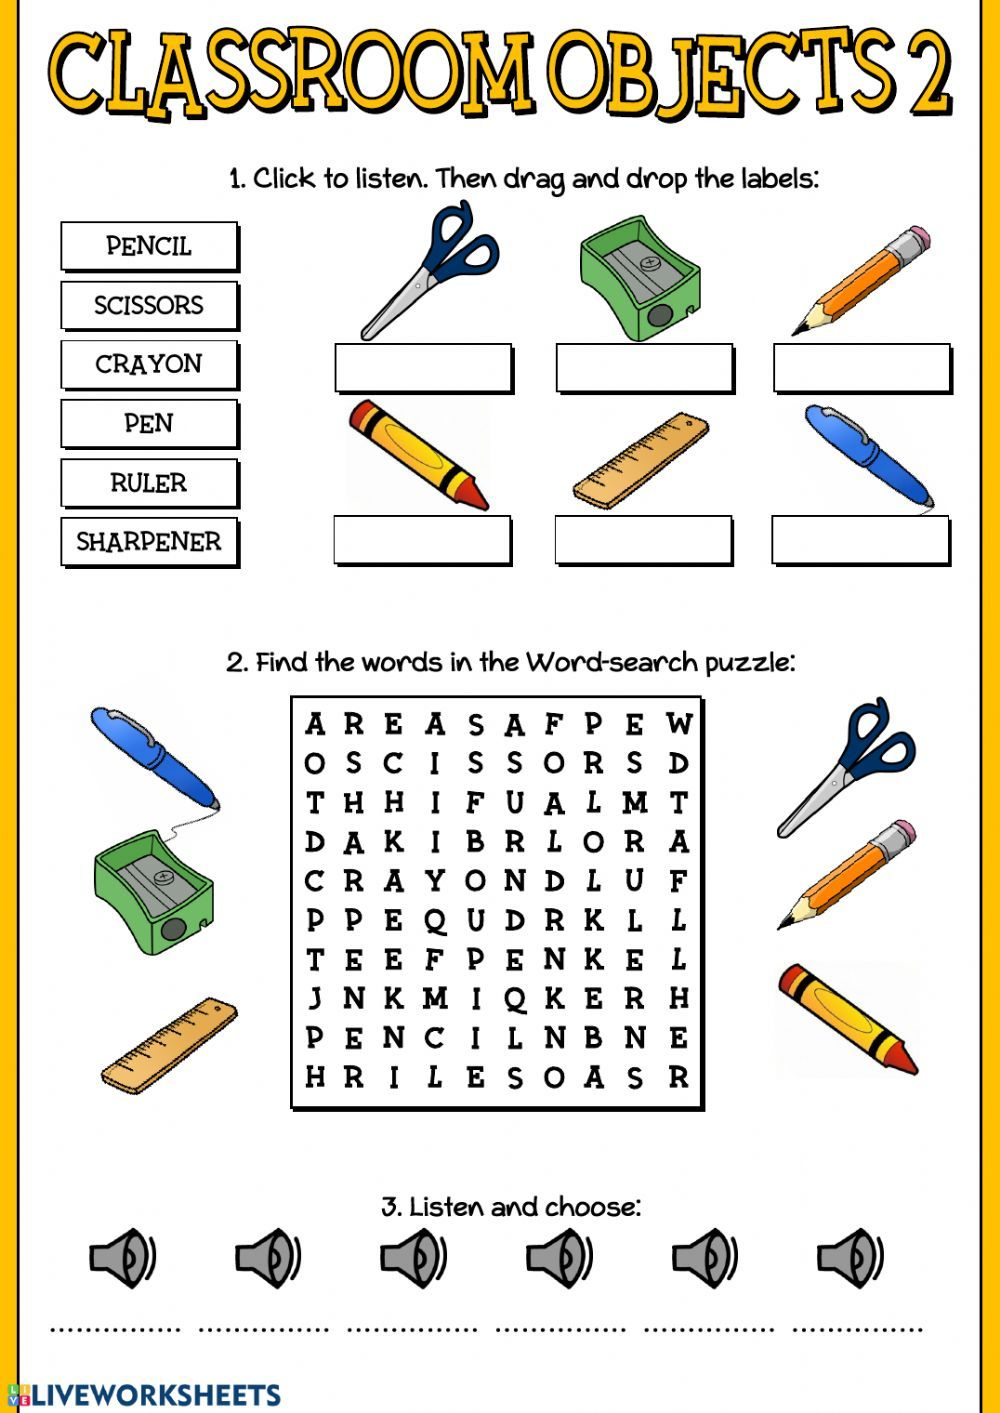 small resolution of Classroom objects 2 - Interactive worksheet   English language learning  activities